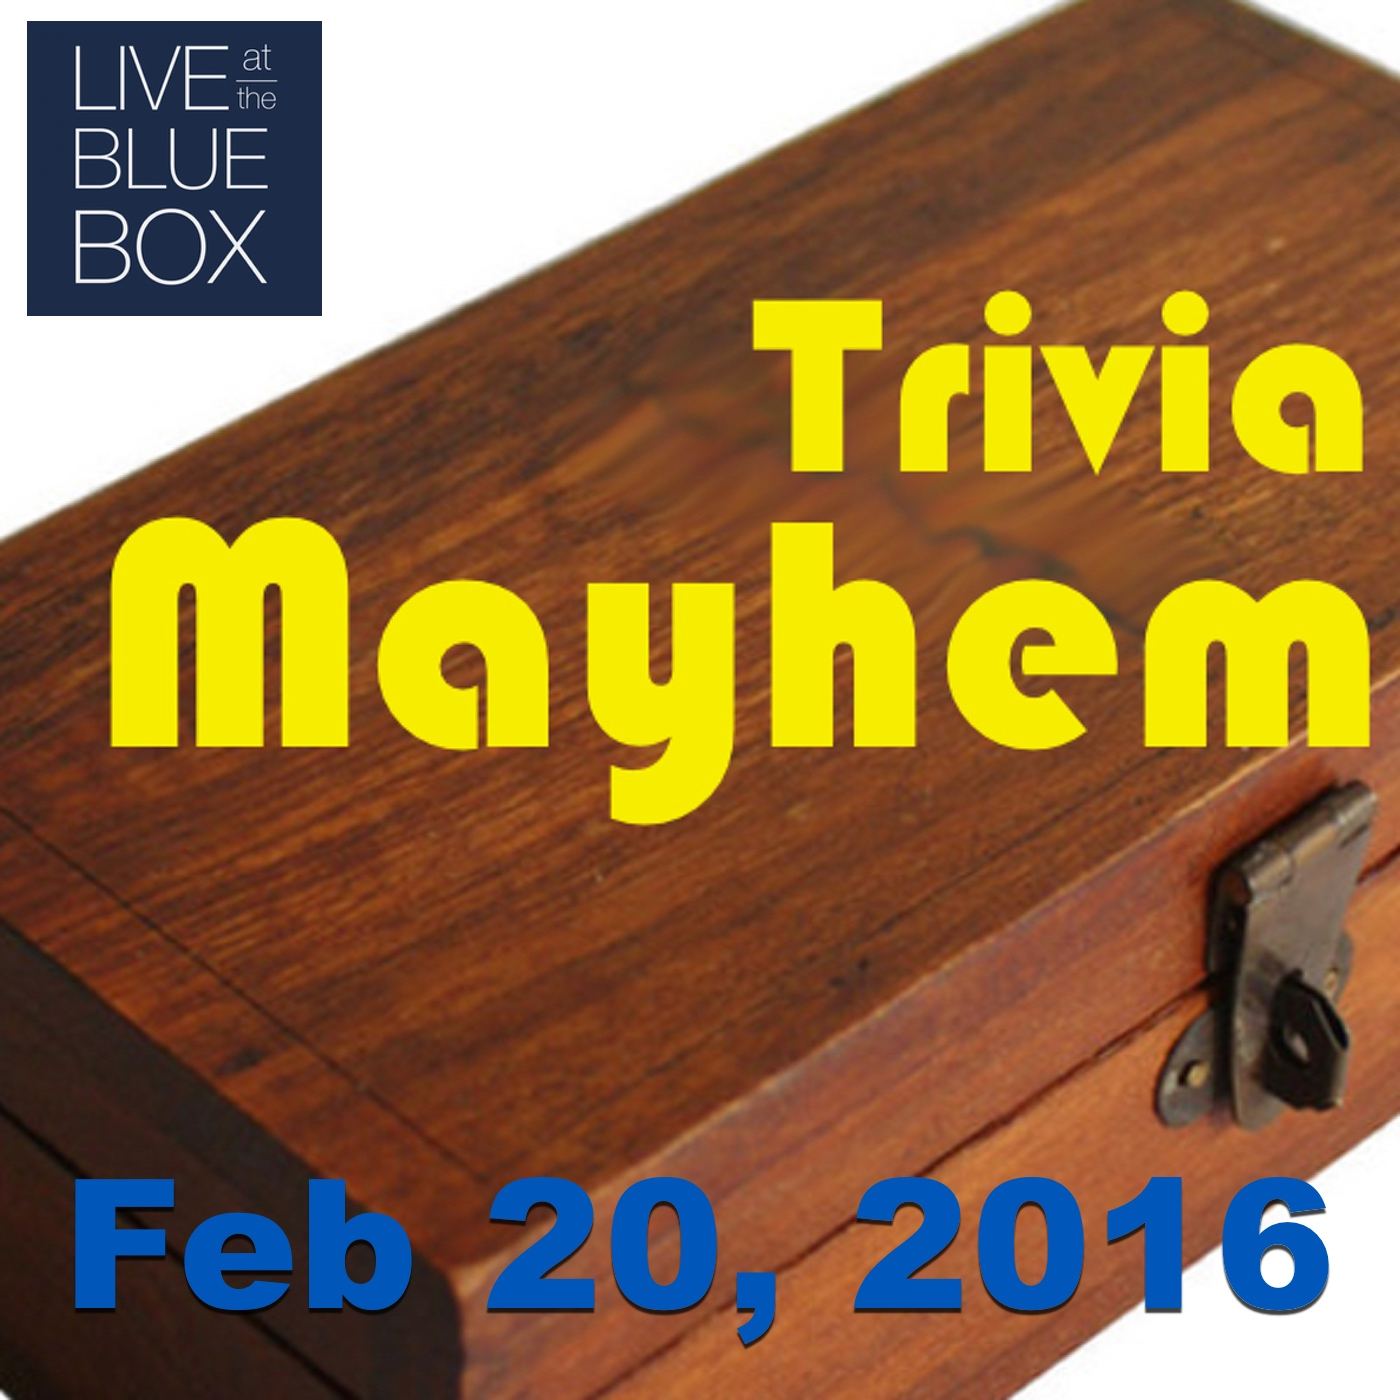 Trivia Mayhem 2-20-16 Live at the Blue Box